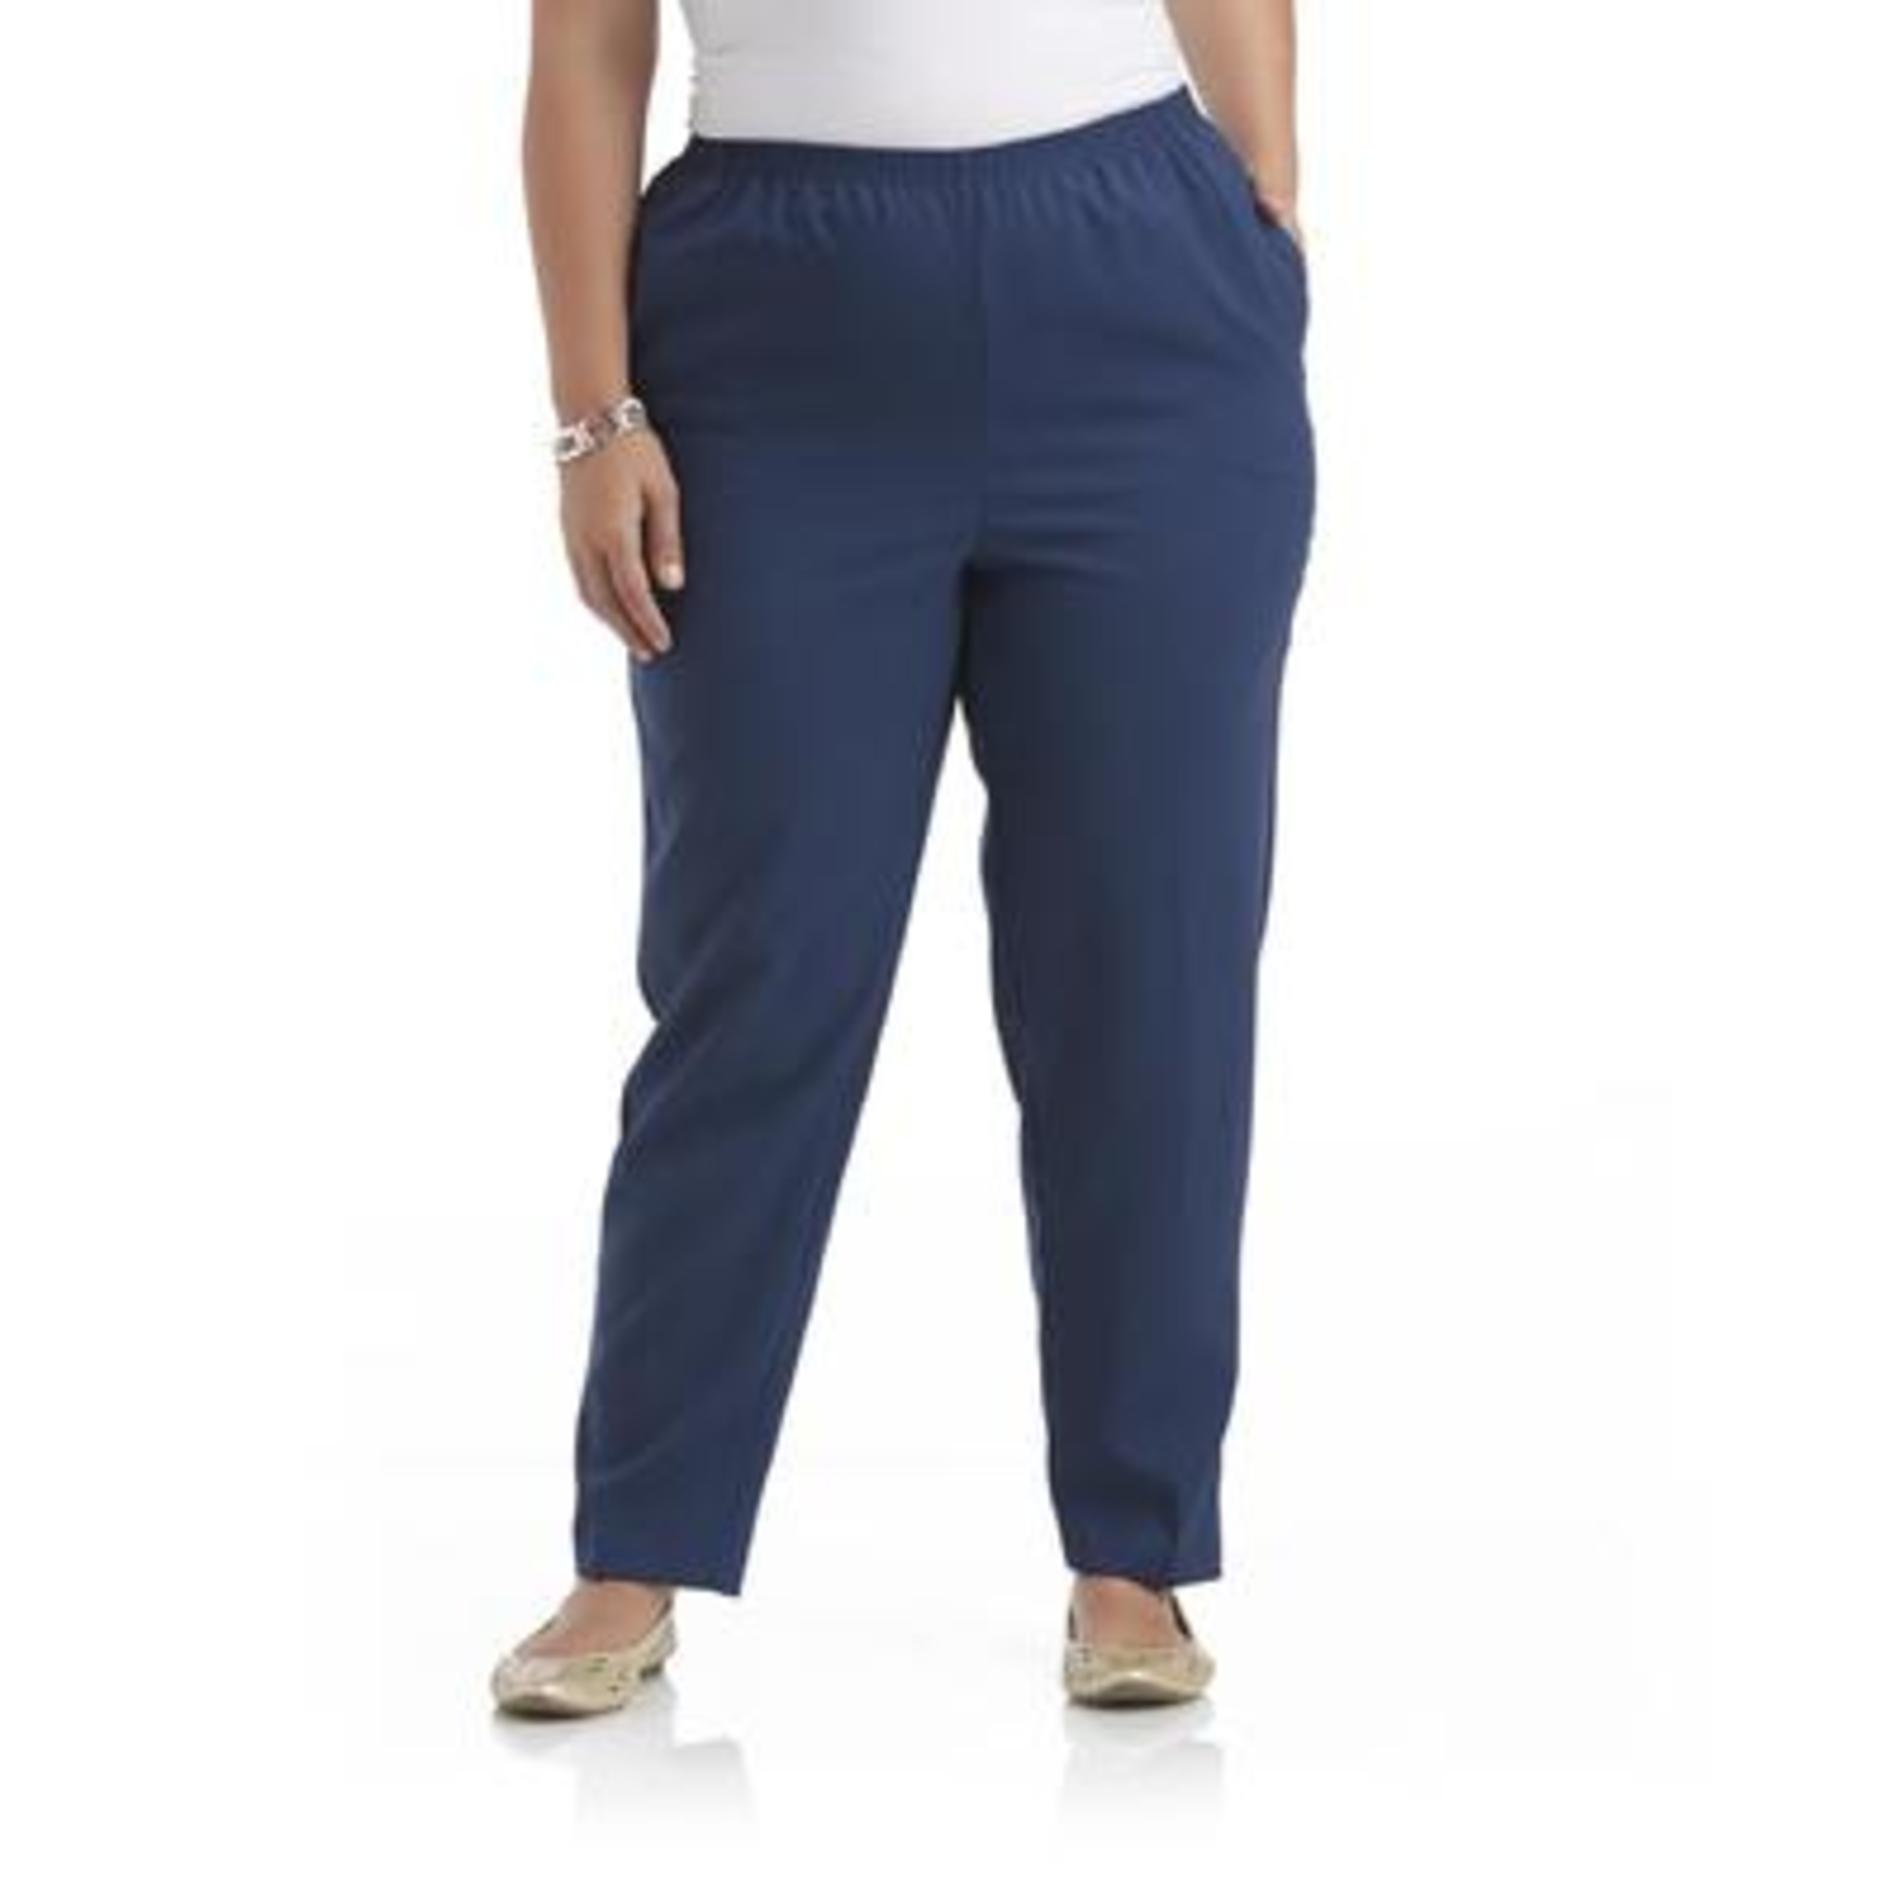 plus size pants at kmart photo - 1